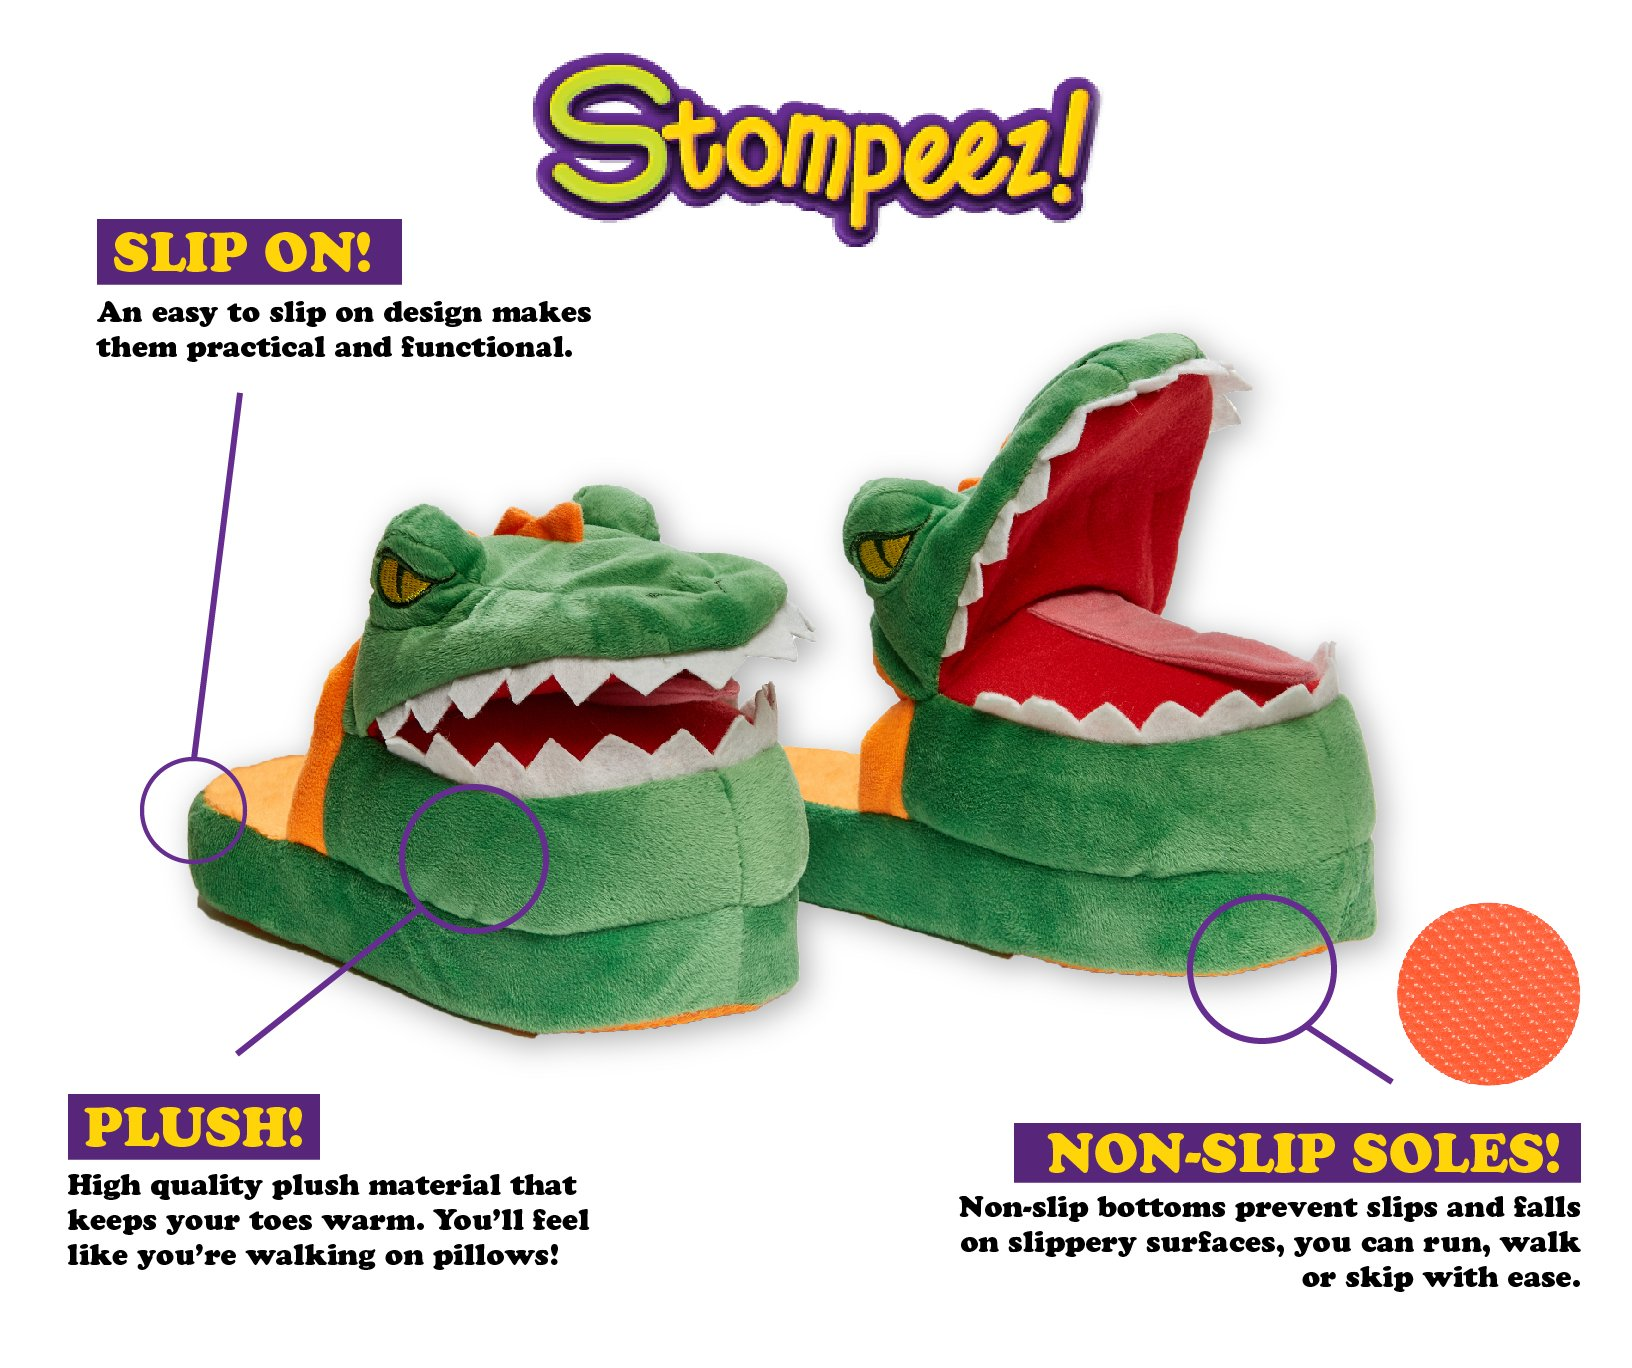 Stompeez Animated Dinosaur T-Rex Plush Slippers - Ultra Soft and Fuzzy - Mouth Opens and closes as You Walk - Medium by Stompeez (Image #3)